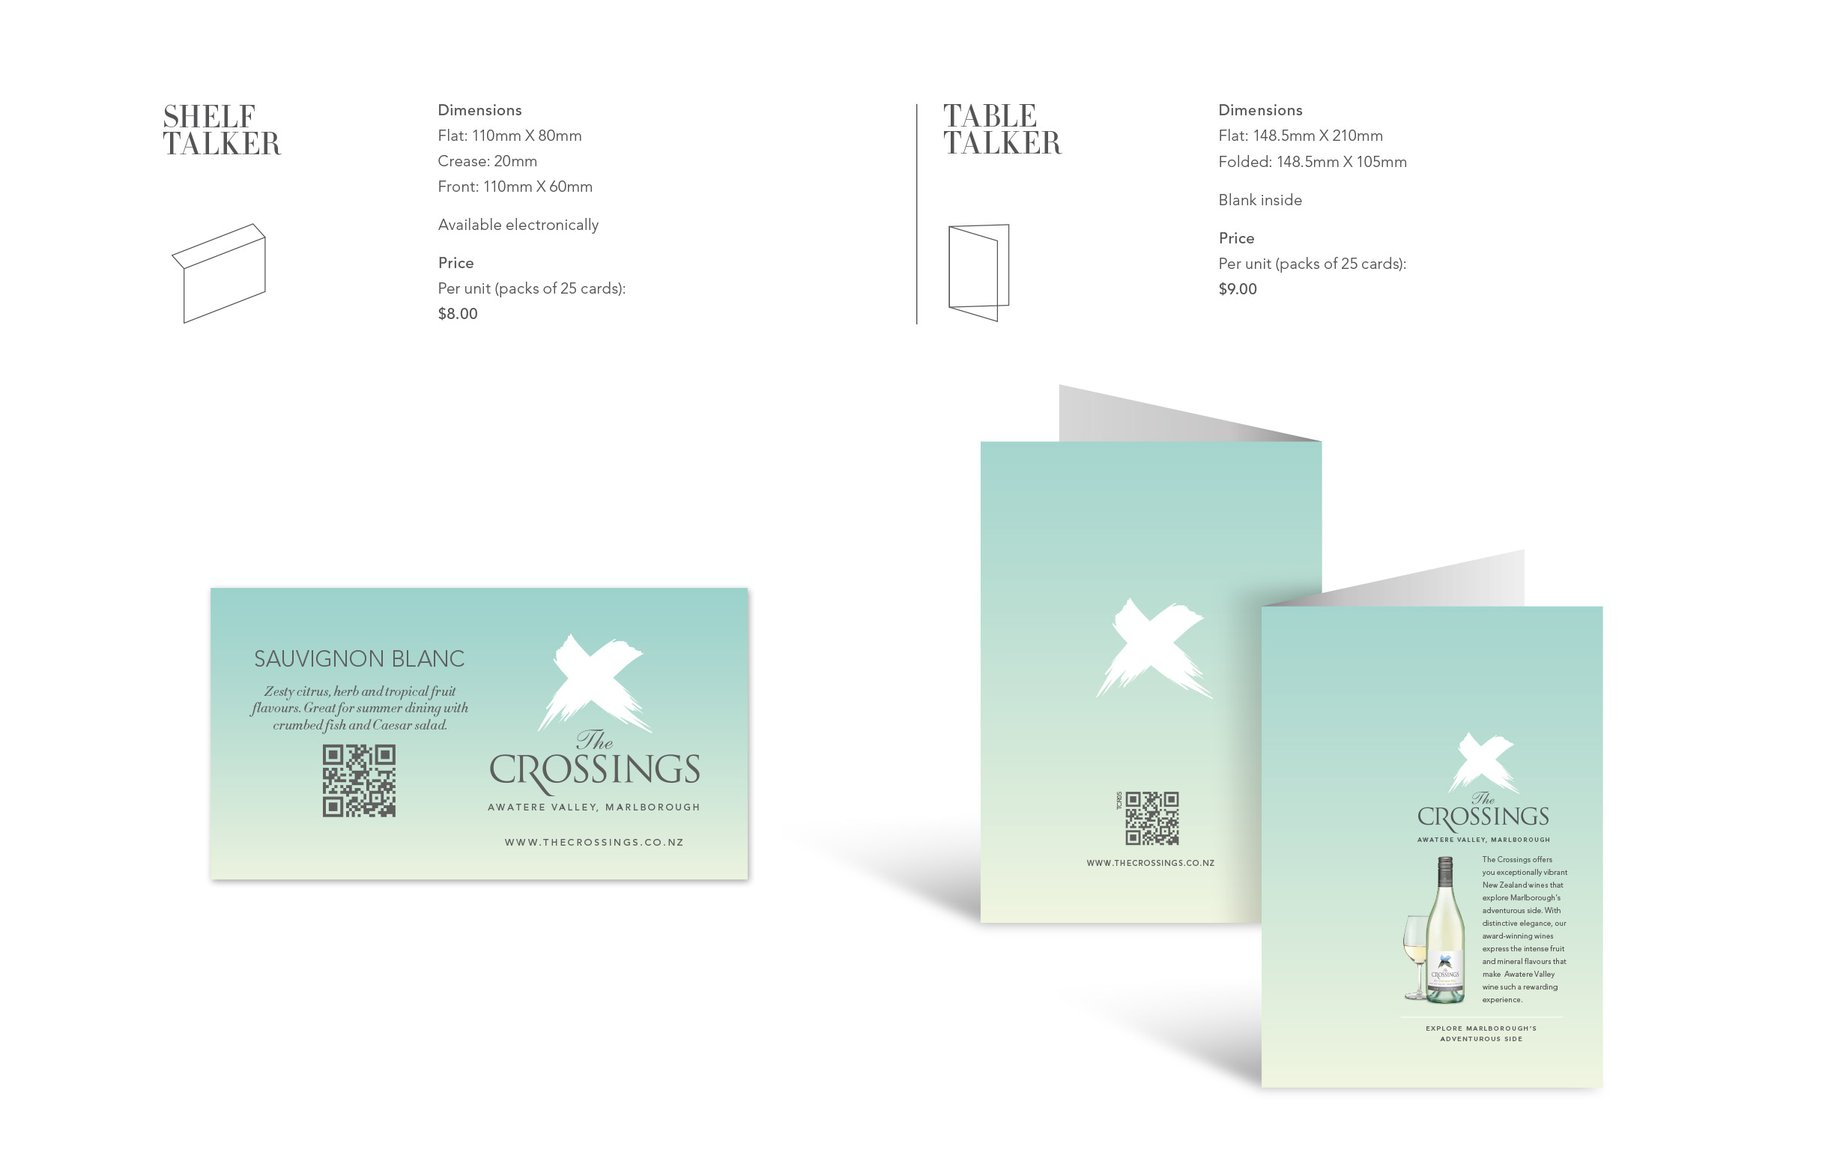 The Crossings shelf and table talkers Design